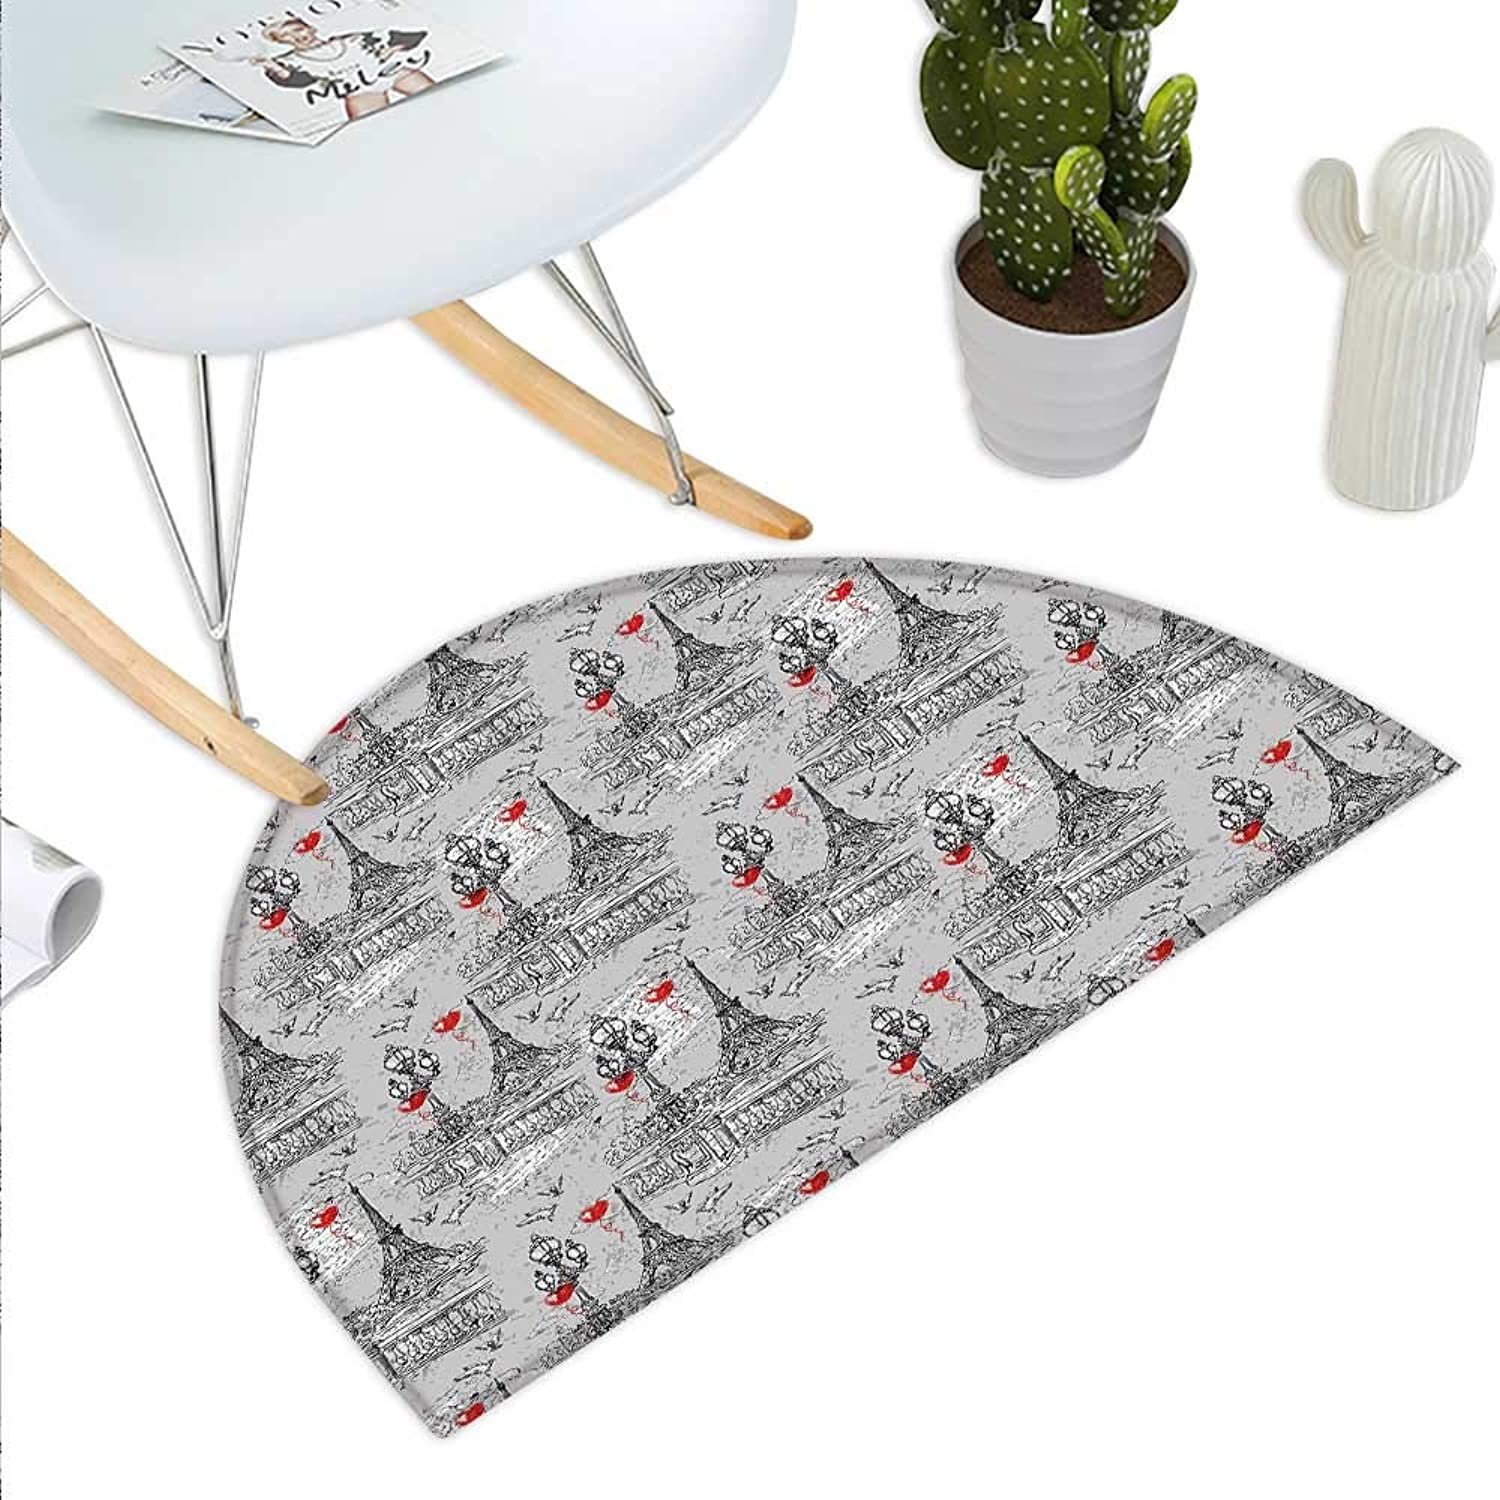 Eiffel Semicircle Doormat River Seine Lanterns and Doves on Vintage Style Drawing Style Artistic Backdrop Halfmoon doormats H 43.3  xD 64.9  Red Black Grey